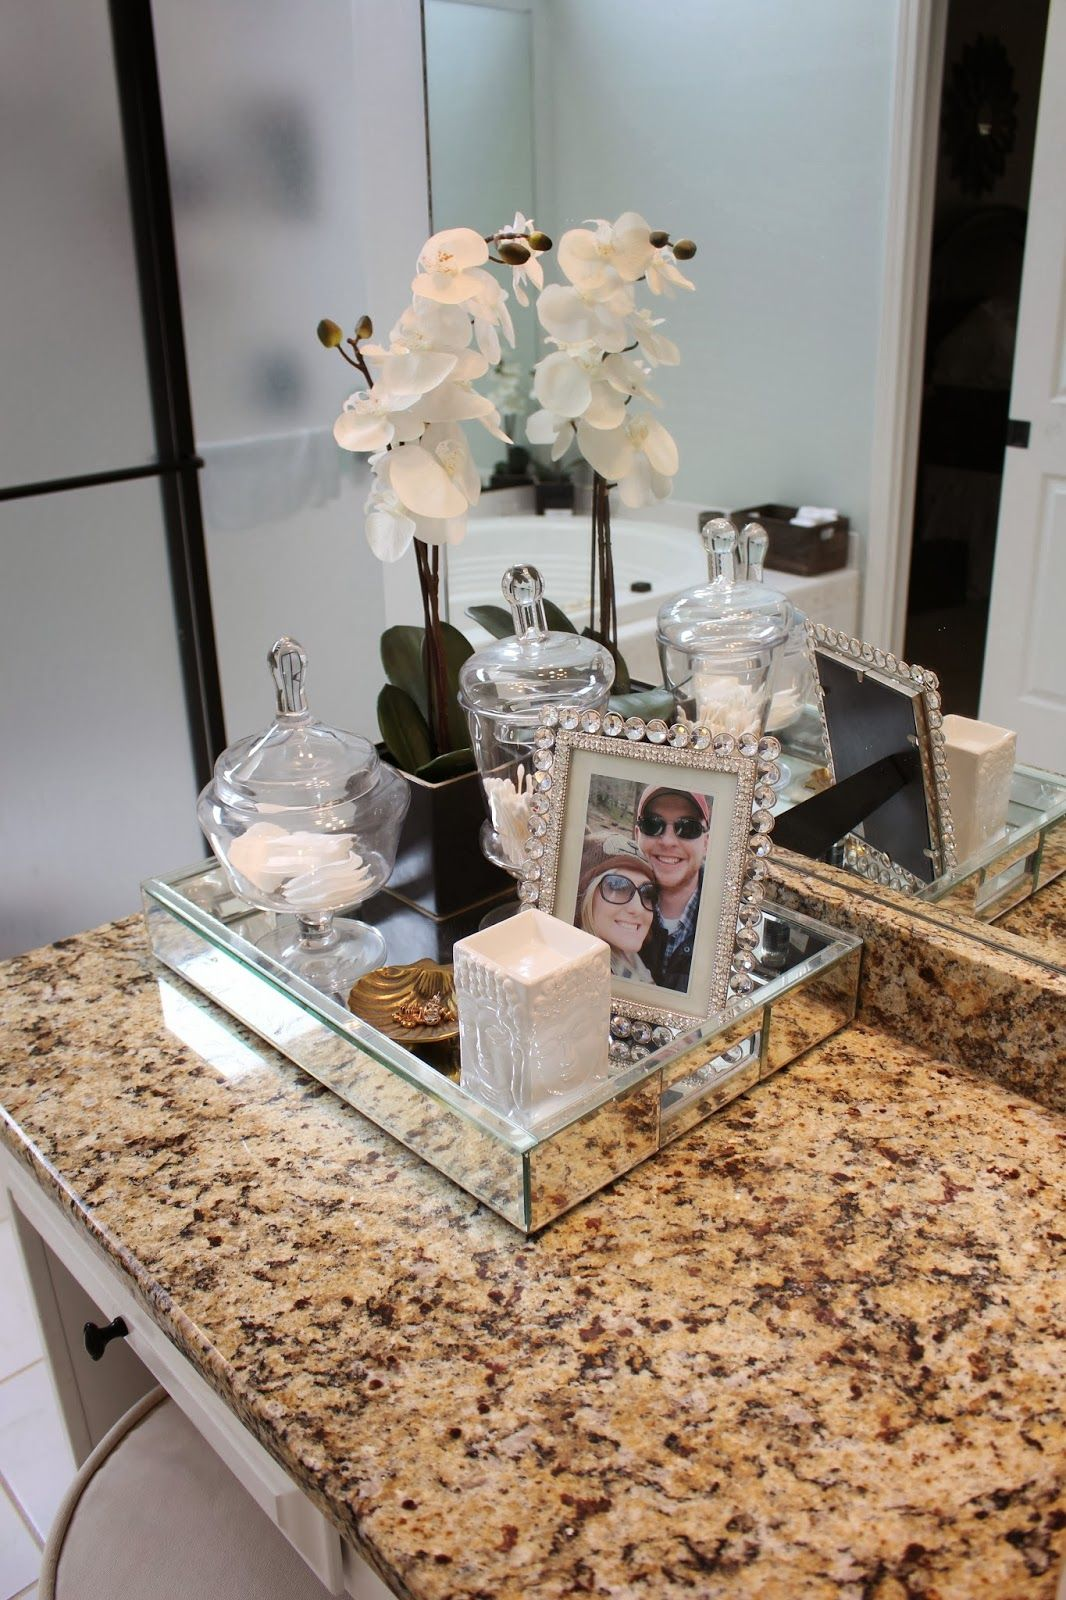 A spa bathroom re do bathroom bathroom counter decor - How to decorate a bathroom counter ...